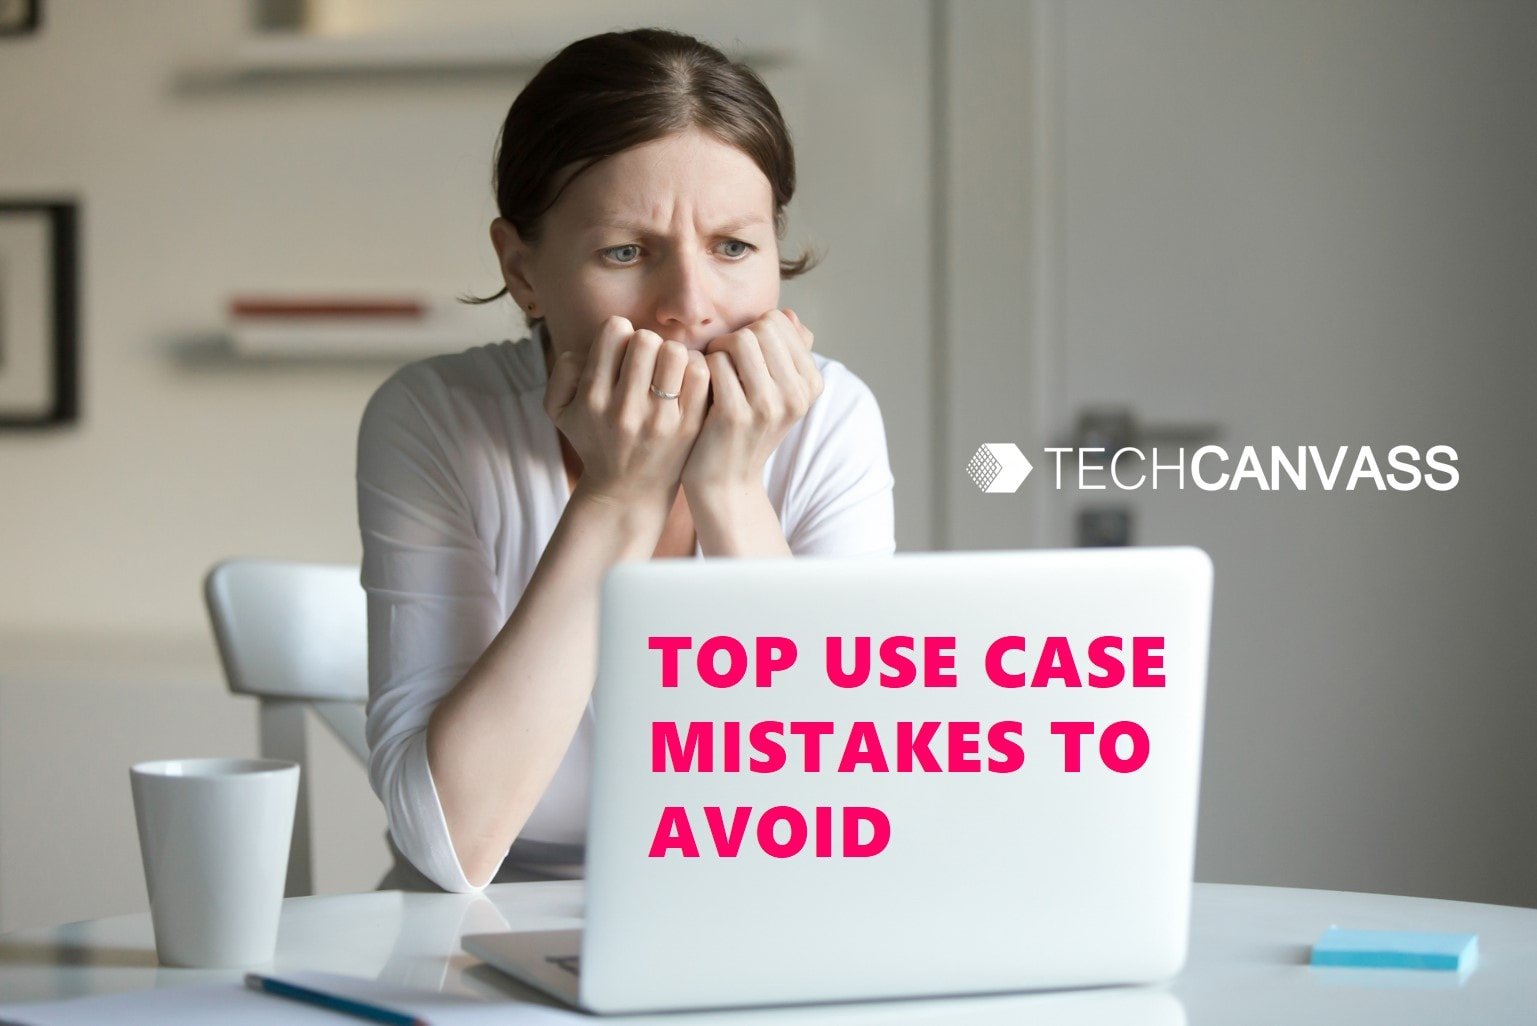 Top use case mistakes to avoid?